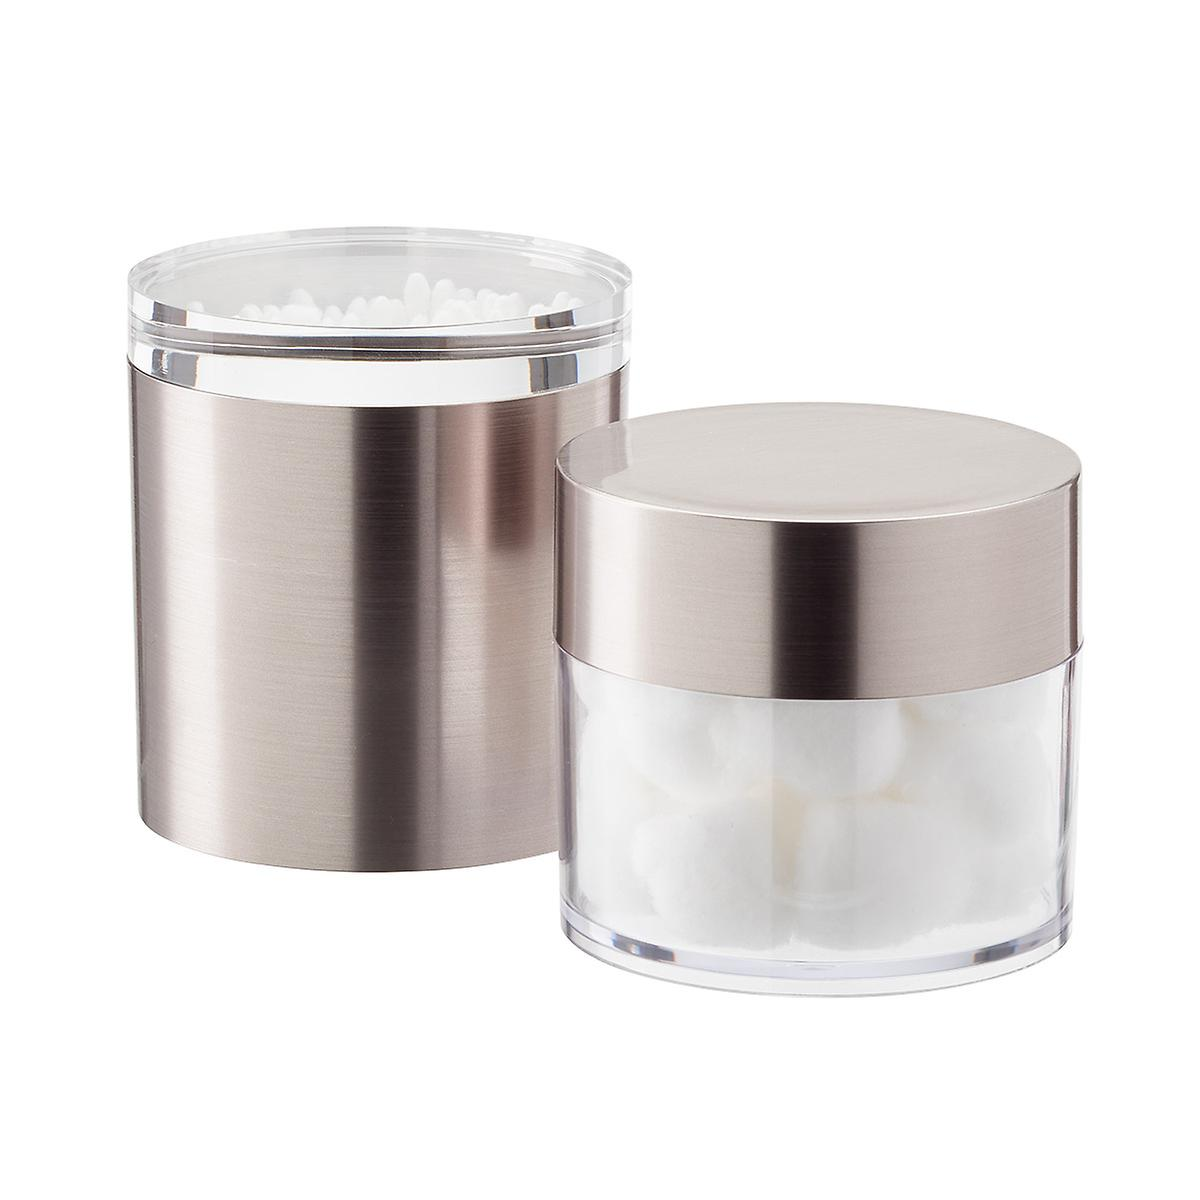 Brushed Nickel Metallic Canisters with Lids